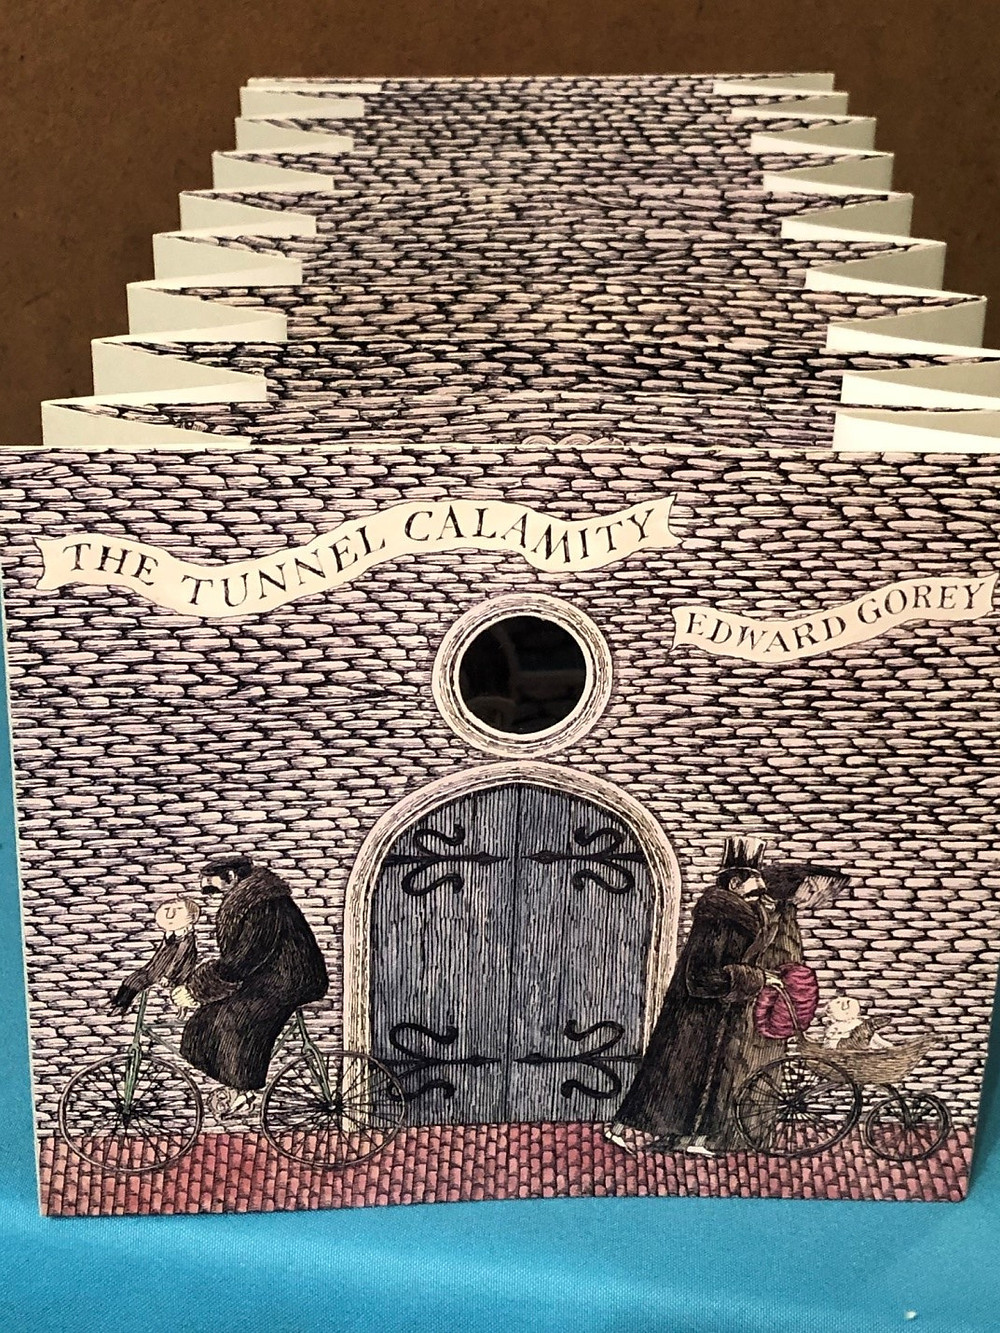 Pop-up book The Tunnel Calamity by Edward Gorey